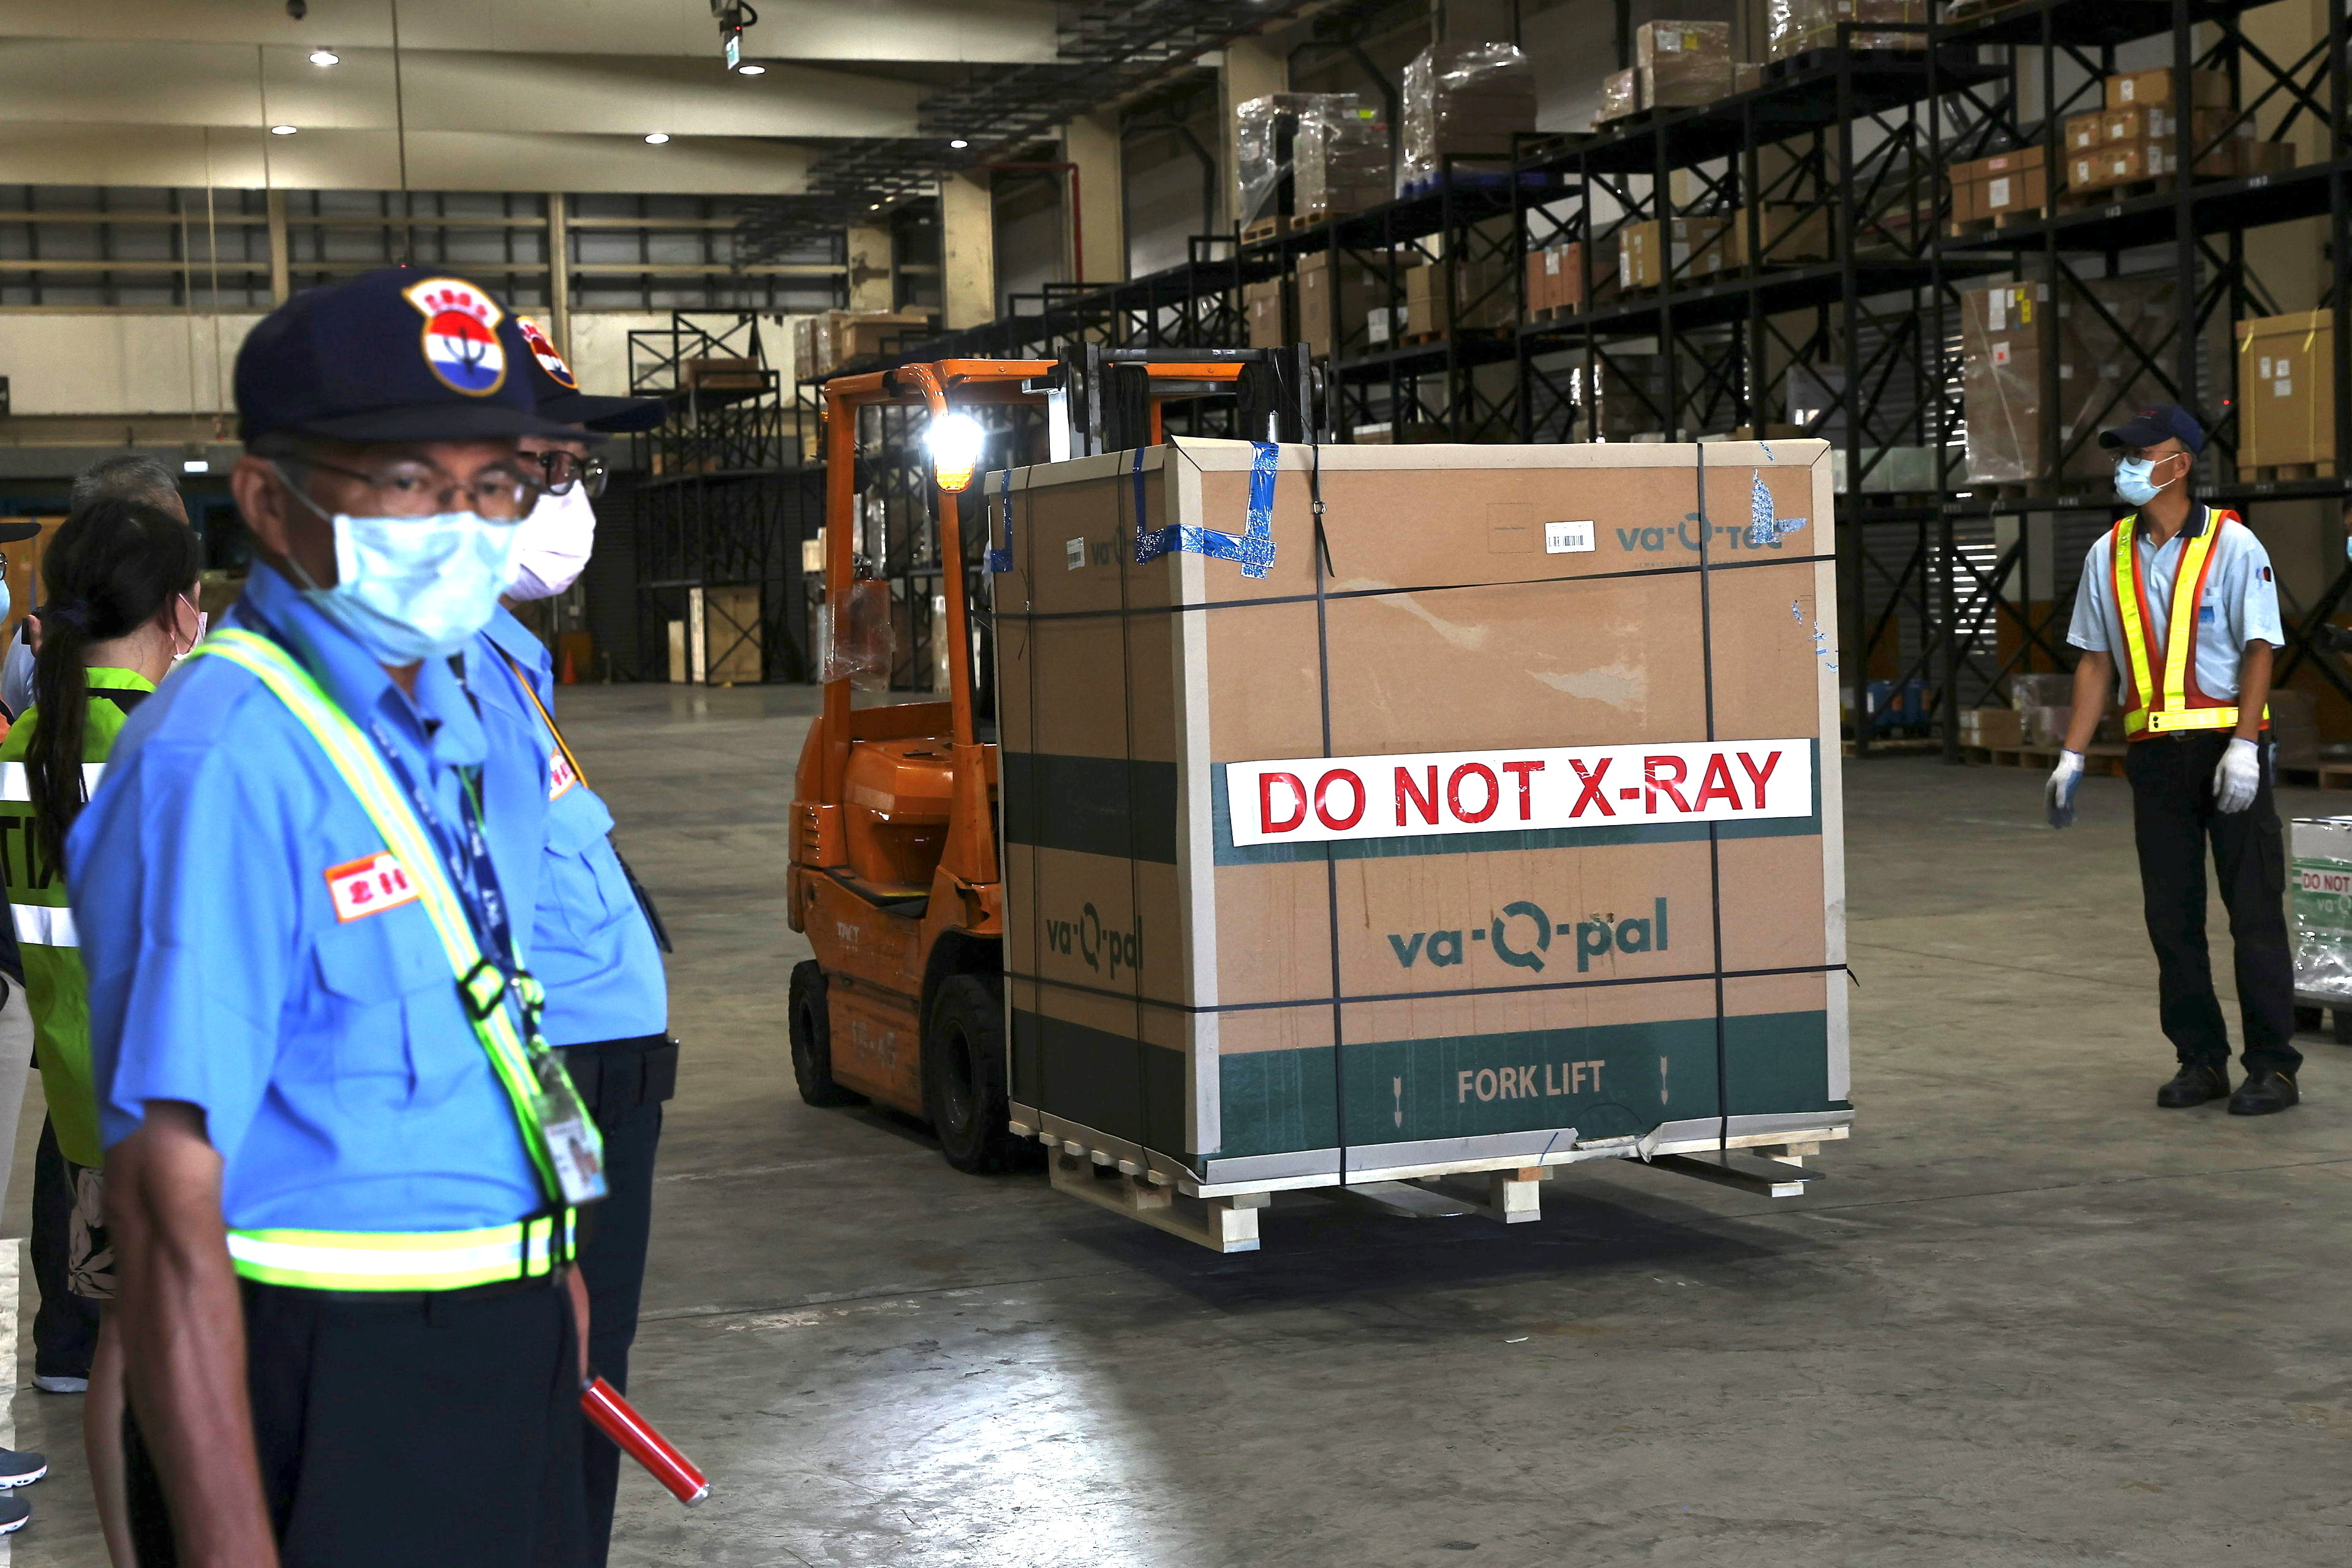 A forklift is used to transport Moderna vaccines against the coronavirus disease (COVID-19) at Taiwan Air cargo Terminal in Taoyuan, Taiwan, June 18, 2021. REUTERS/Ann Wang